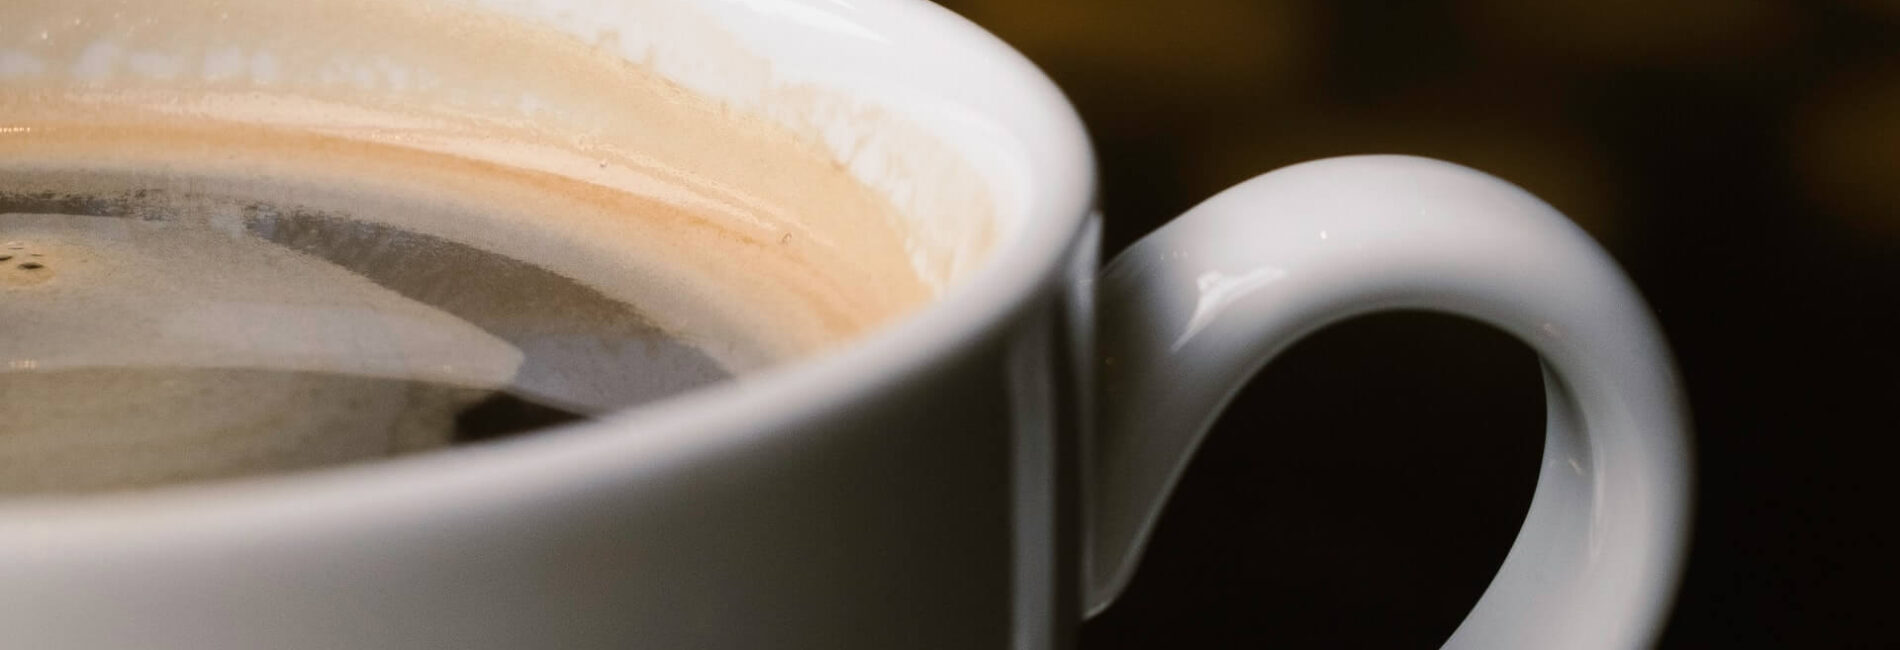 How to Make the Perfect Cup Using French Press Coffee Maker